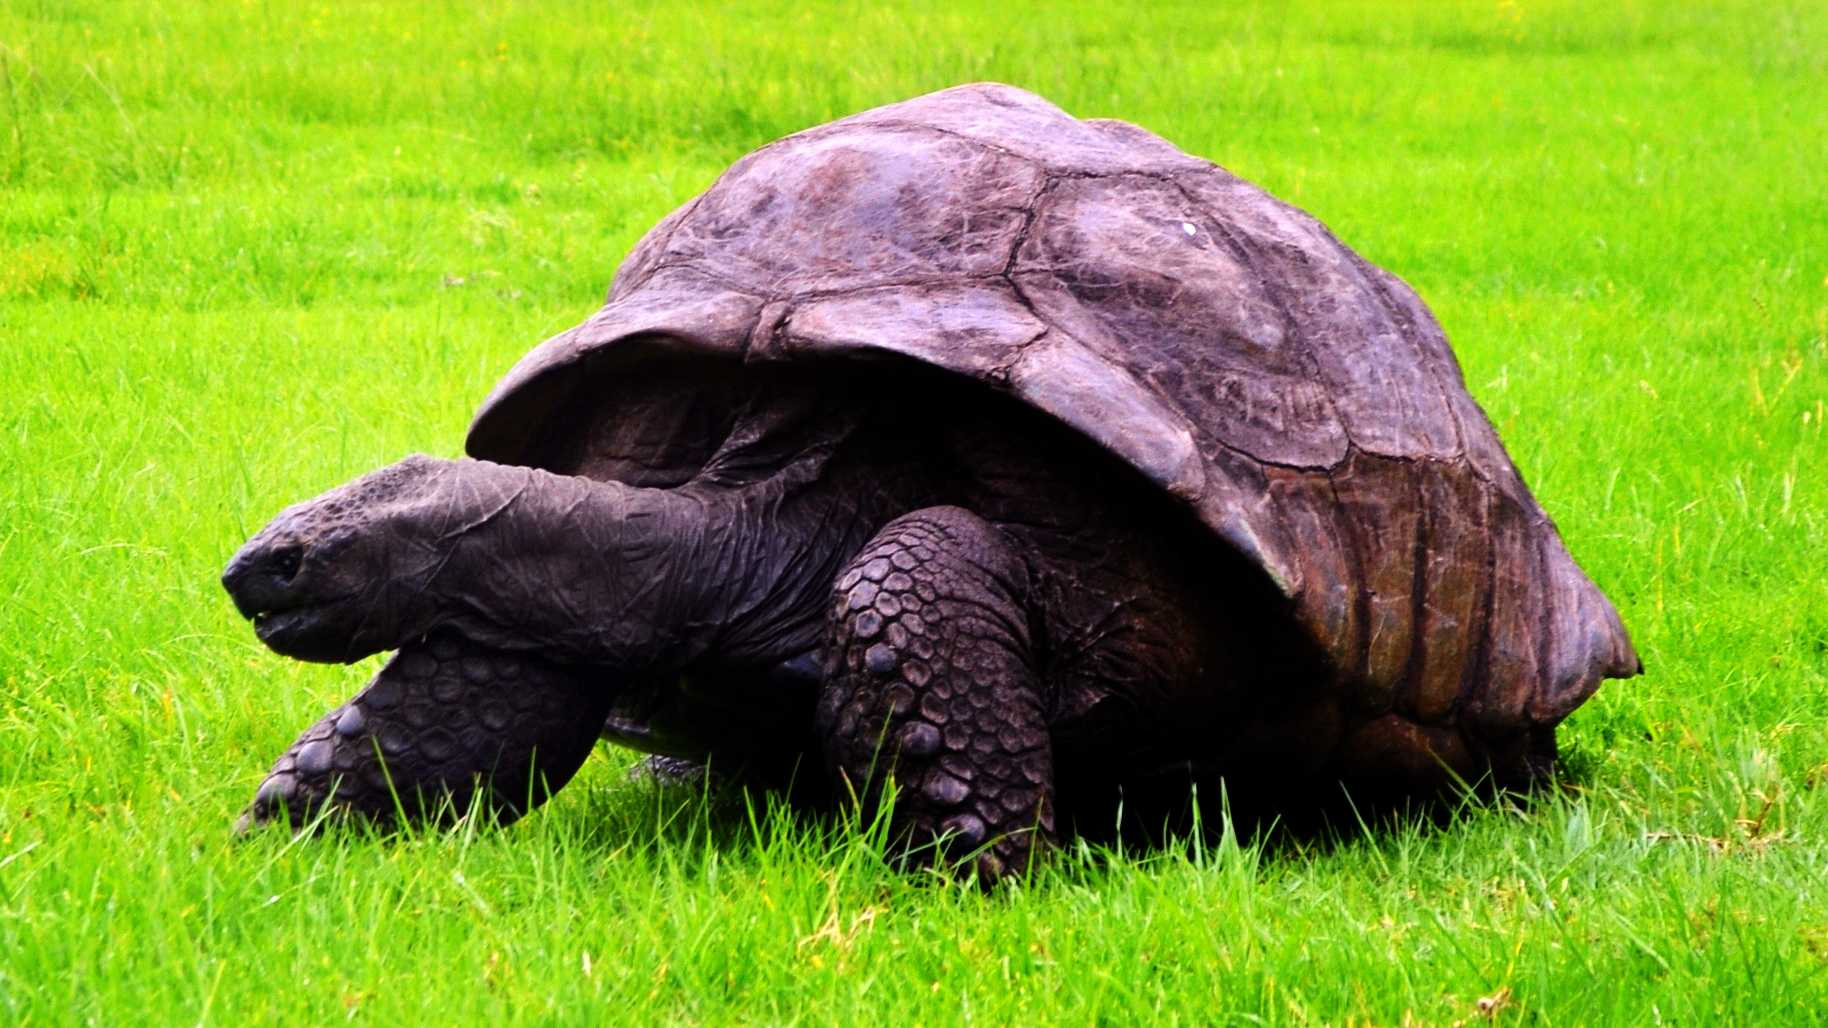 The Giant Tortoise Jonathan